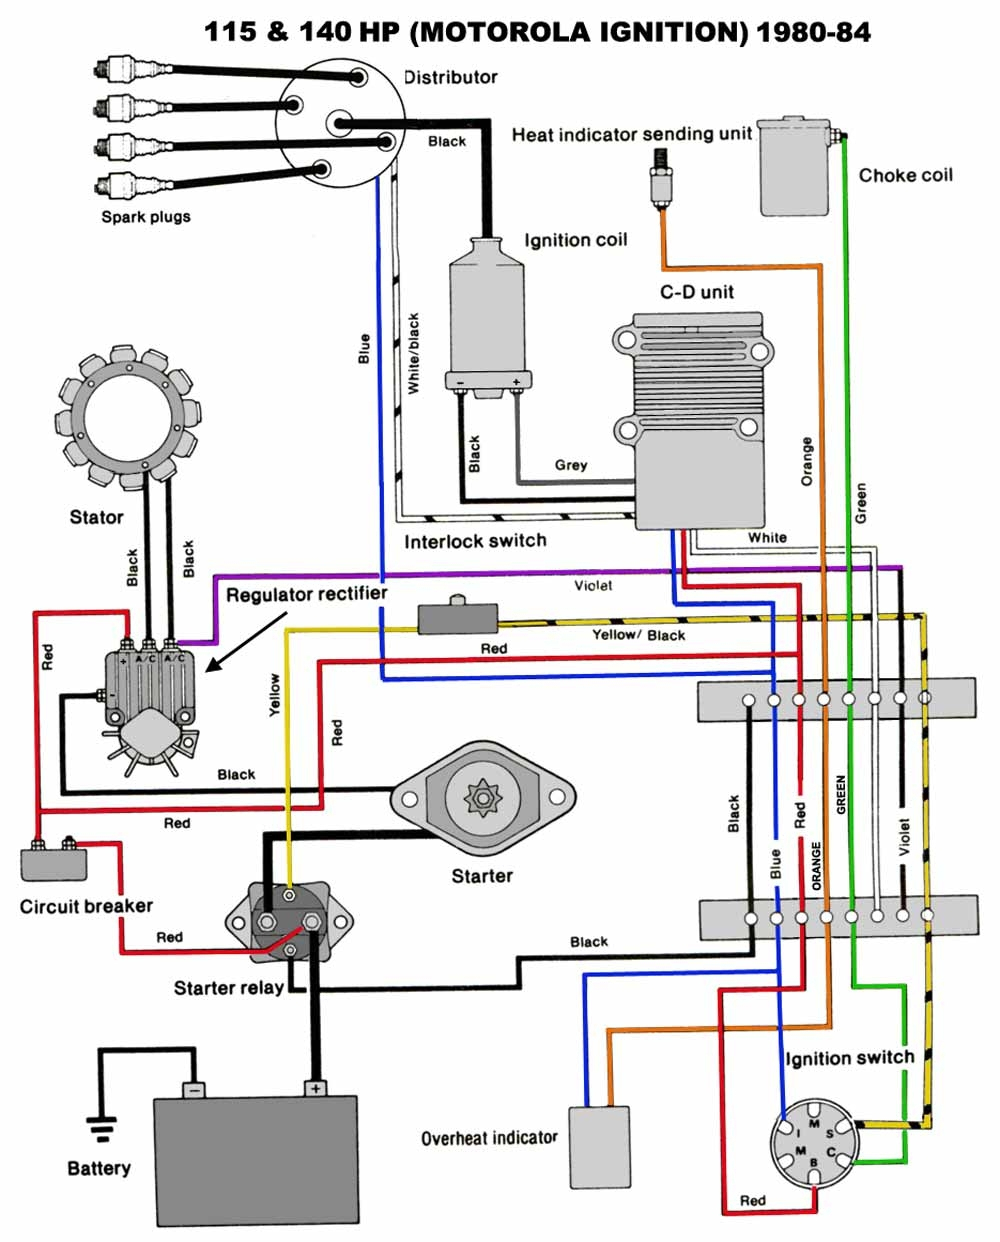 Wiring Diagram For Yamaha 115 Outboard - Wiring Diagrams - Yamaha Outboard Wiring Diagram Pdf